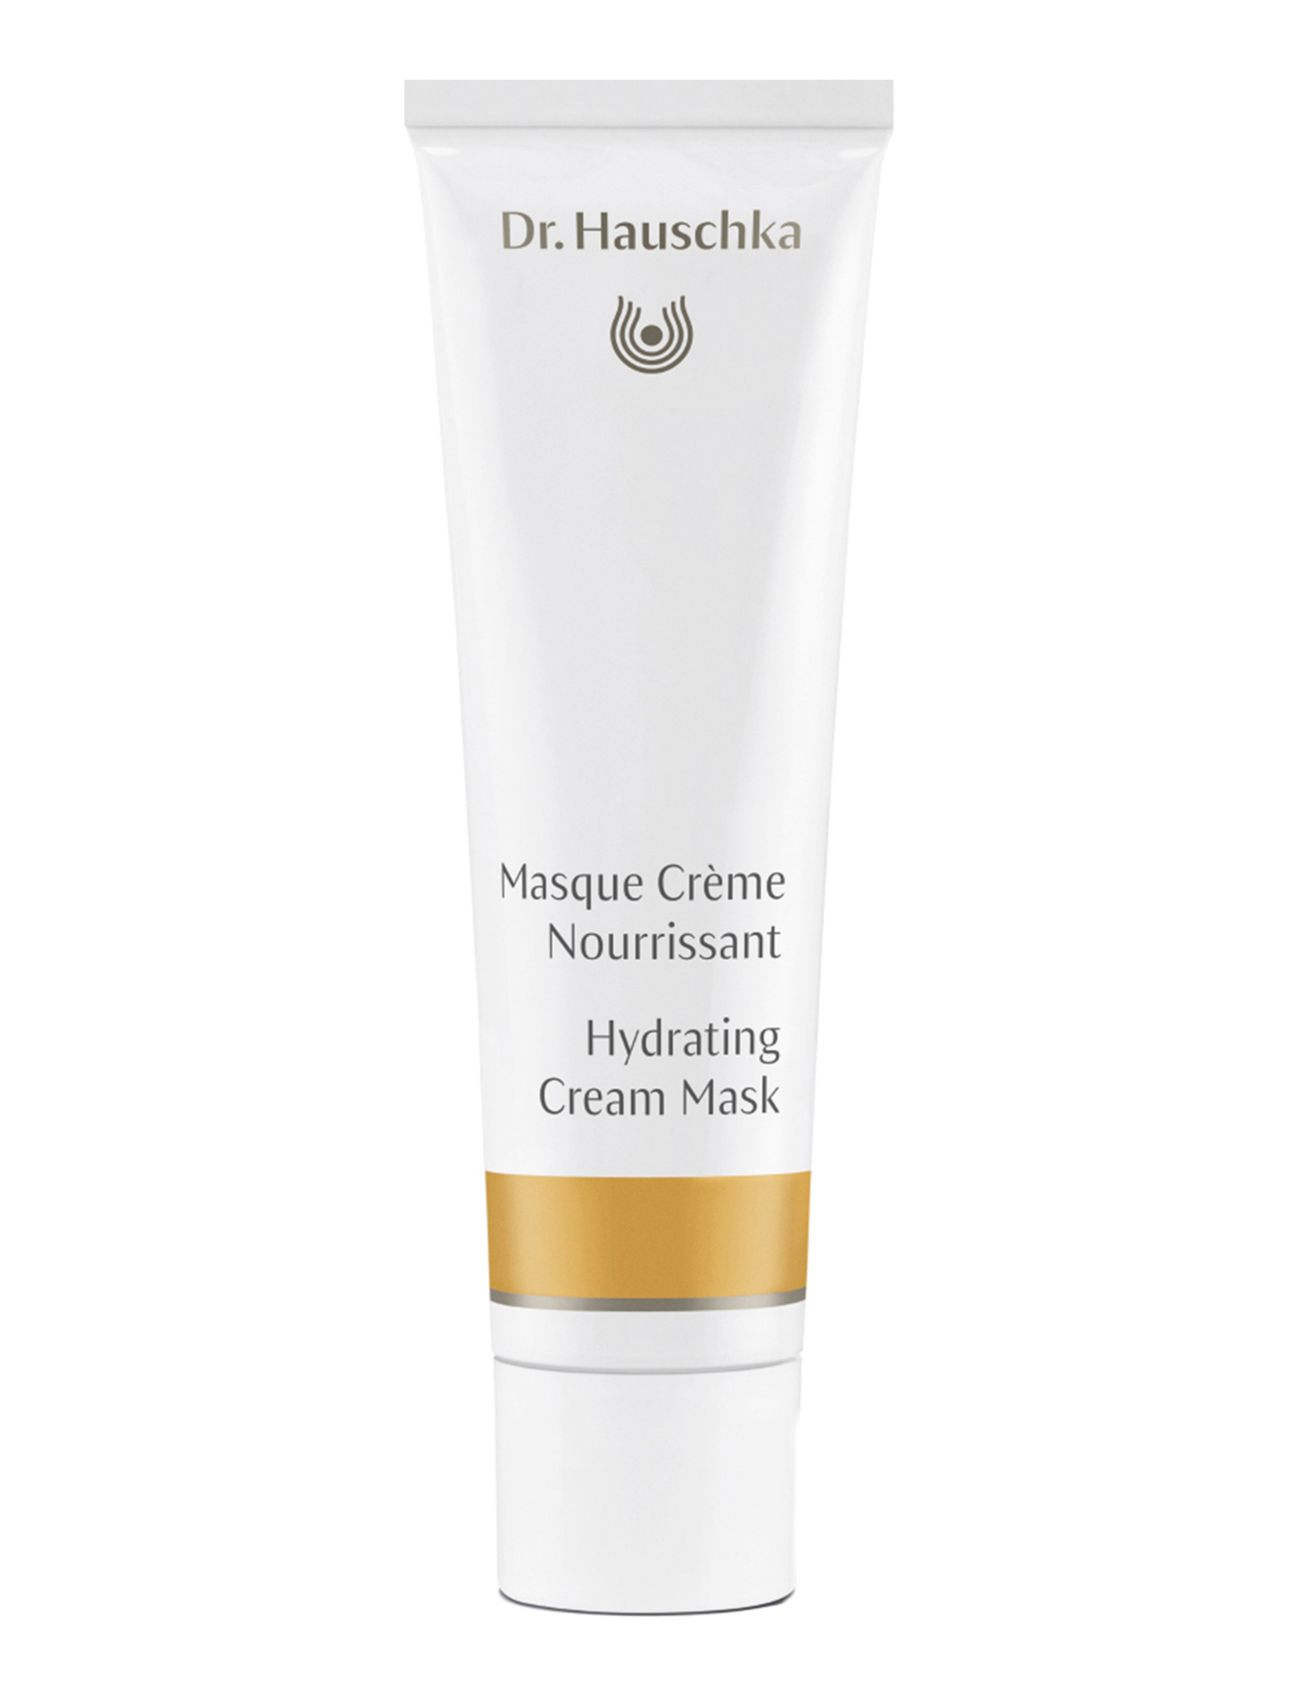 Image of Hydrating Cream Mask Beauty WOMEN Skin Care Face Face Masks Nude Dr. Hauschka (3281588965)